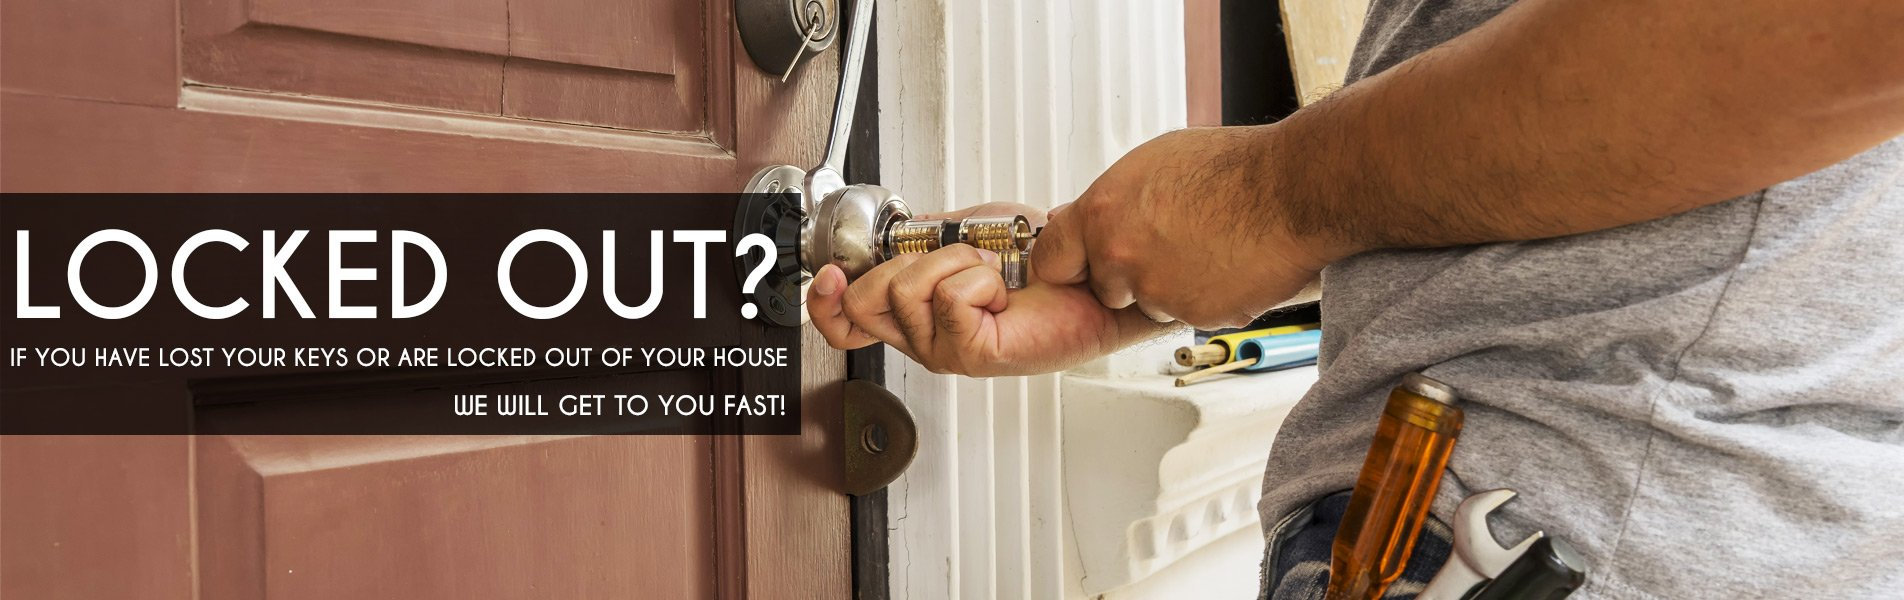 Sea Girt NJ Locksmith Store Sea Girt, NJ 732-419-7147